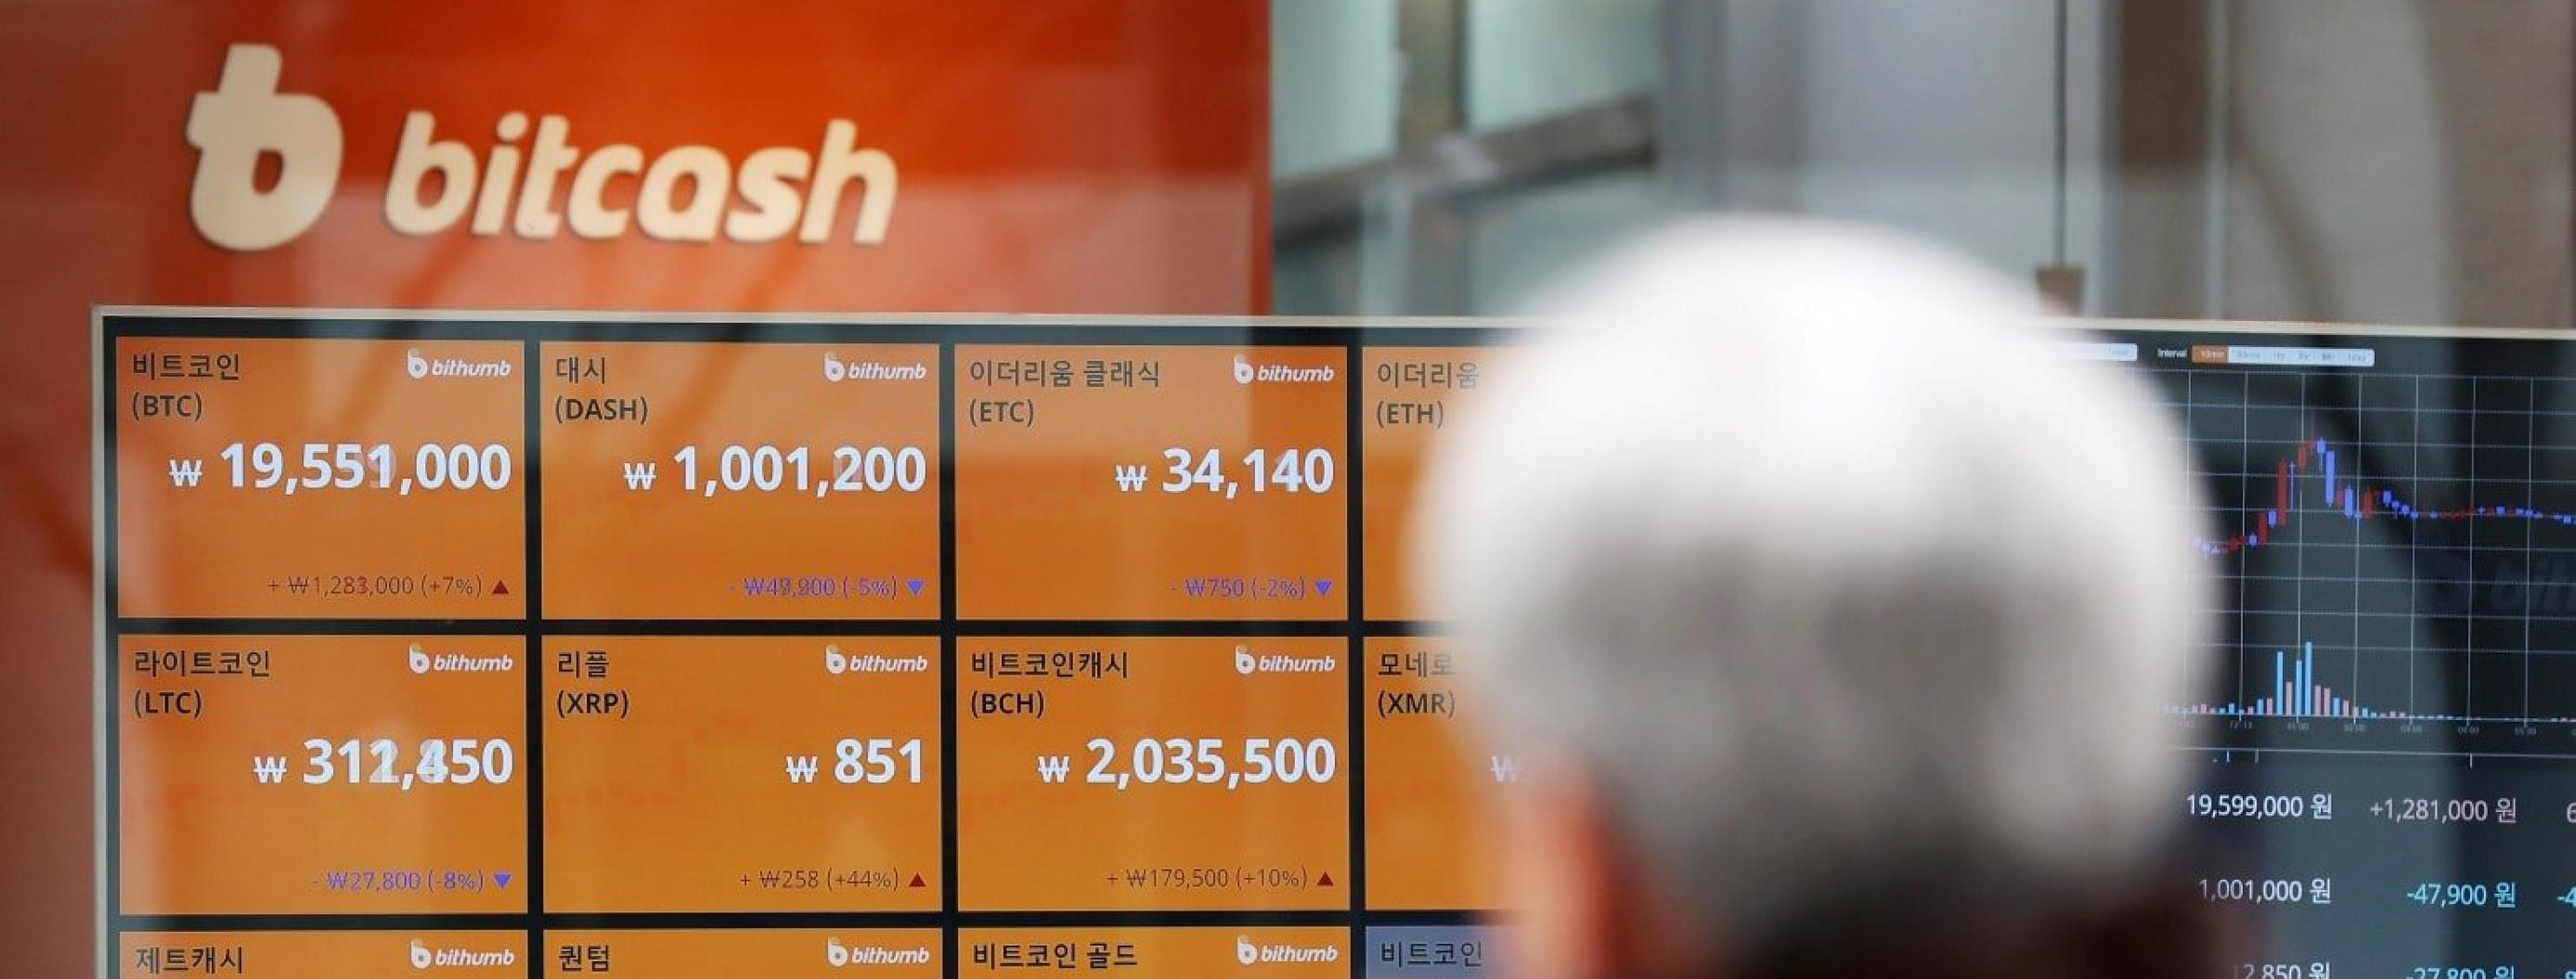 Korean Government Announces New Cryptocurrency Regulations